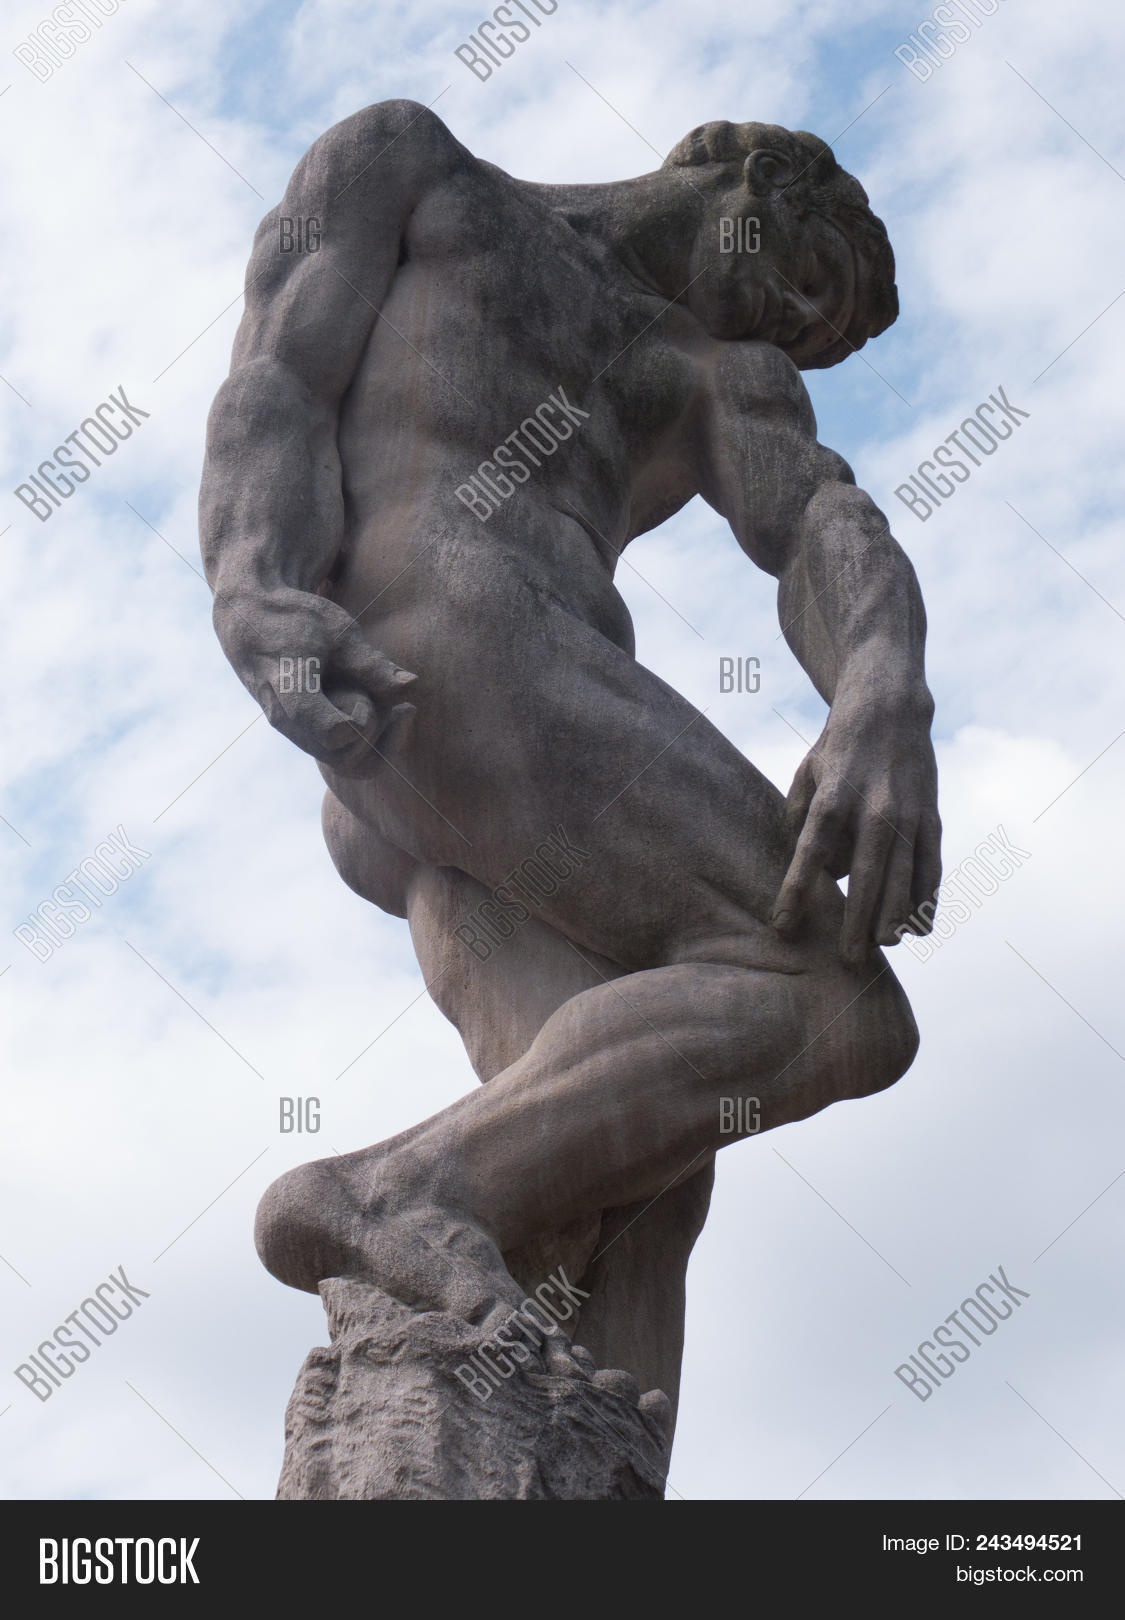 Concrete Statue Of Muscular Male Striking A Greco Roman Pose Against The Sky And Clouds